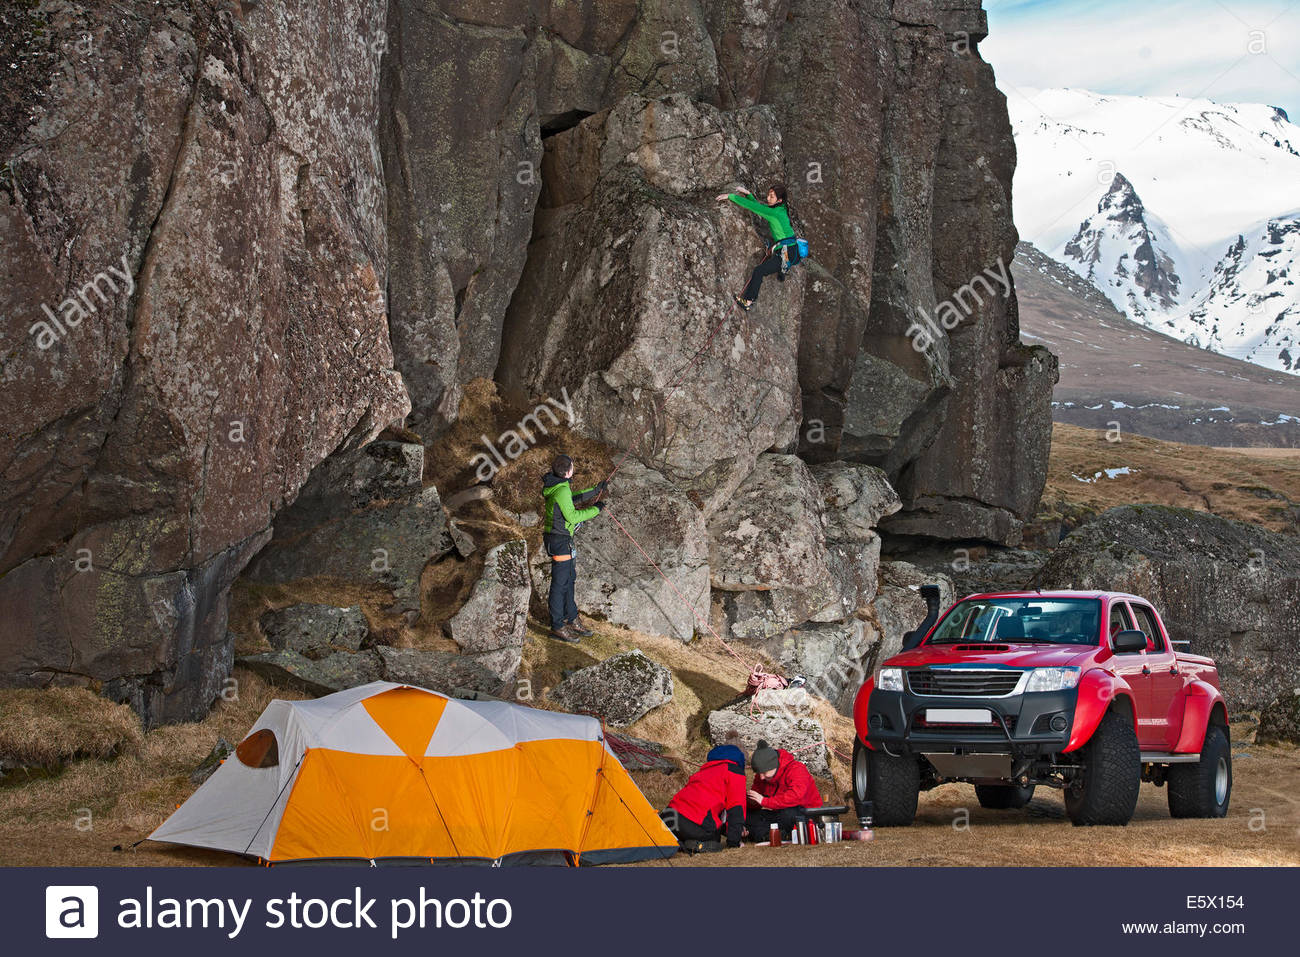 Female climber on a sports climb, Hnappavellir, South East, Iceland - Stock Image